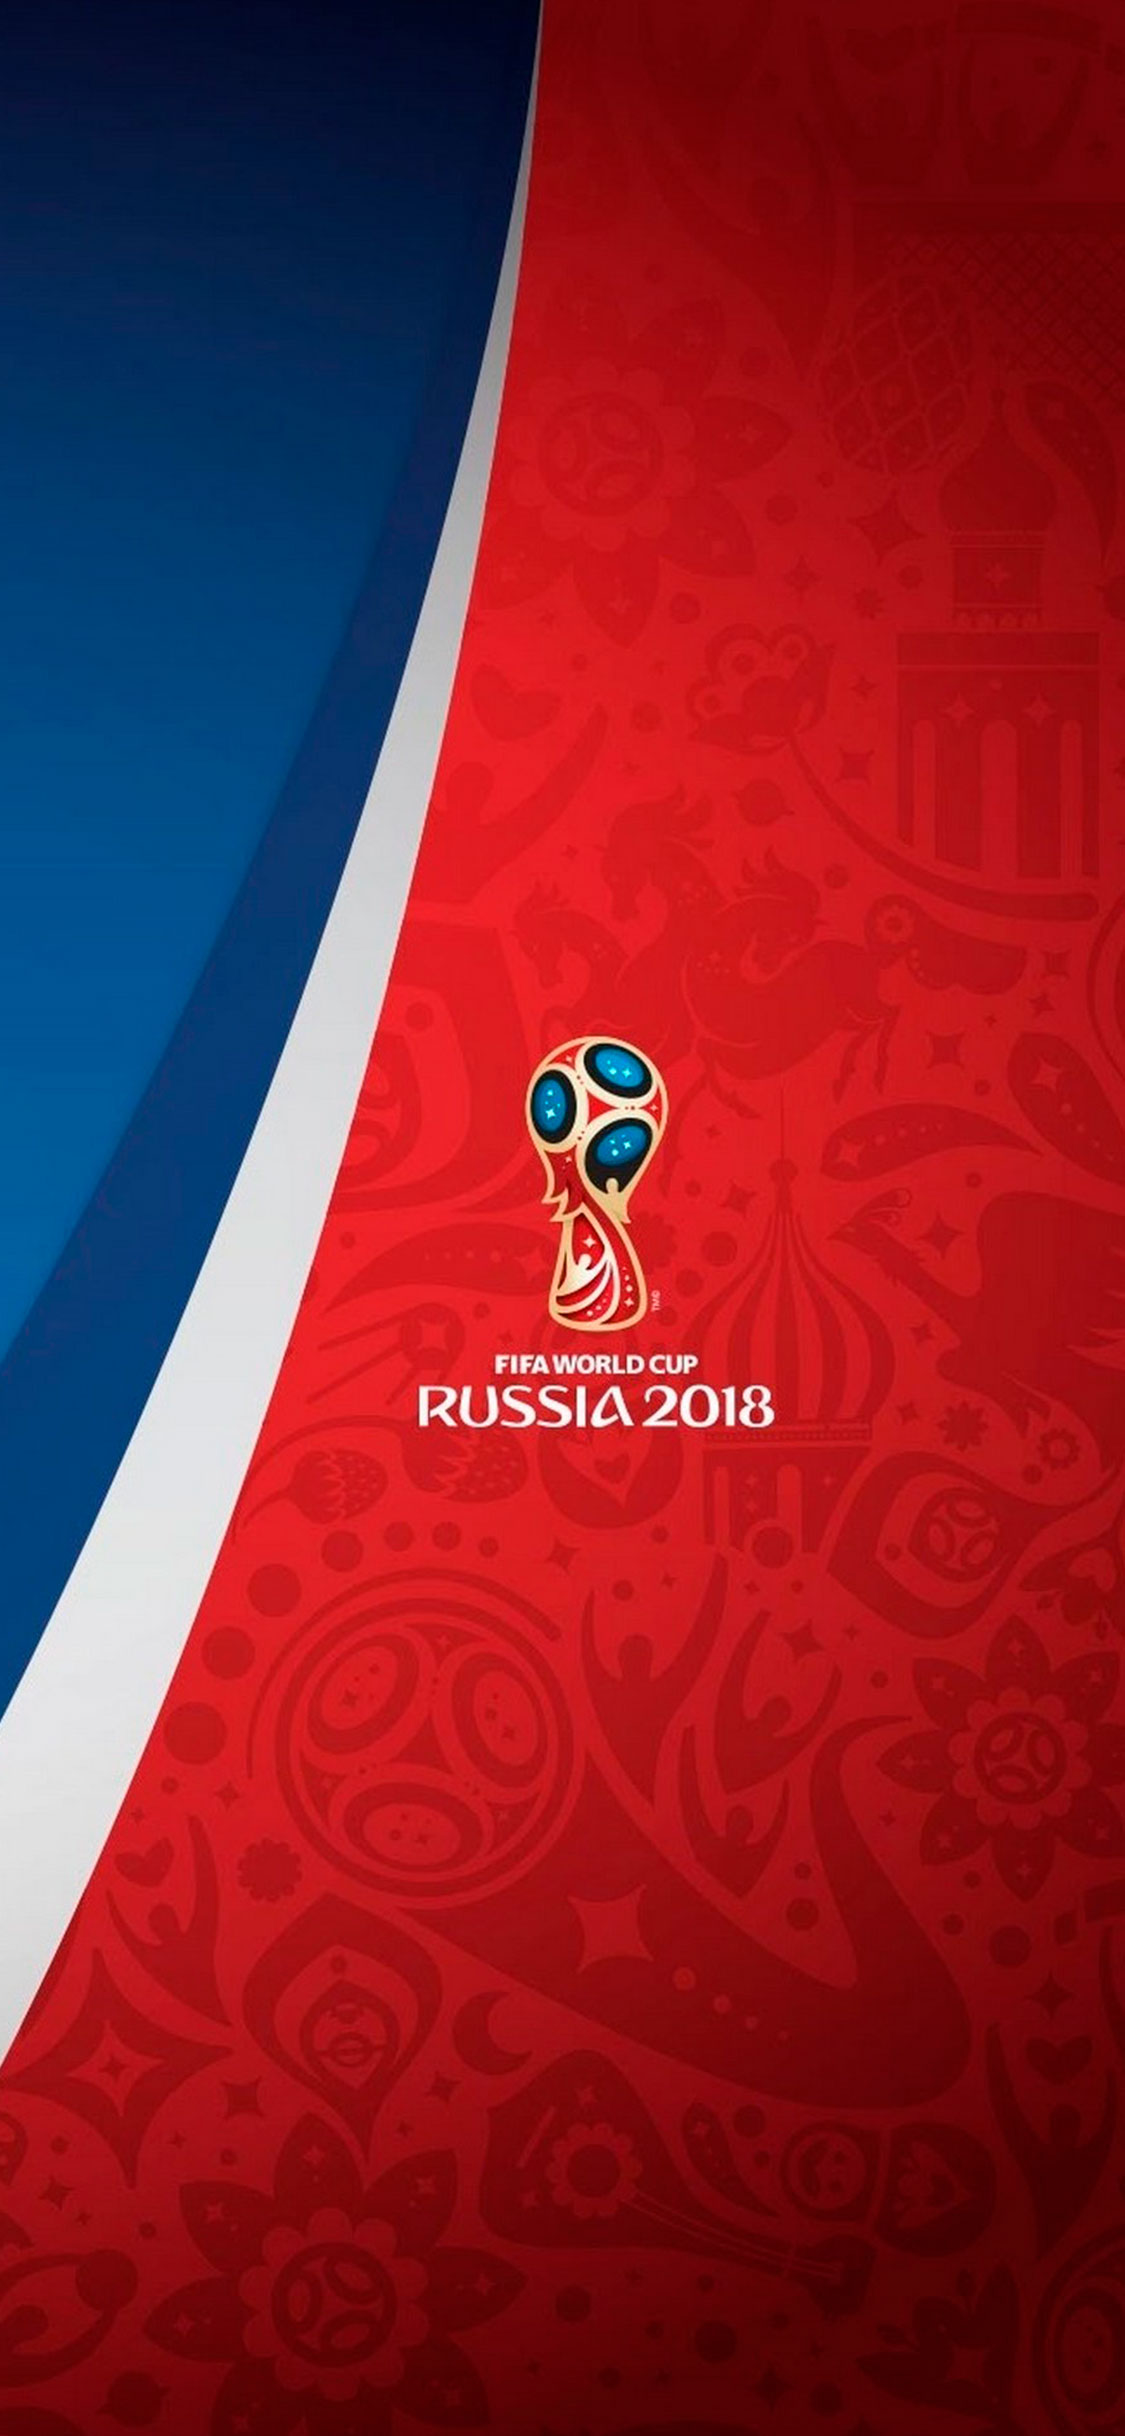 iPhone wallpaper world cup 2018 2018 FIFA World Cup